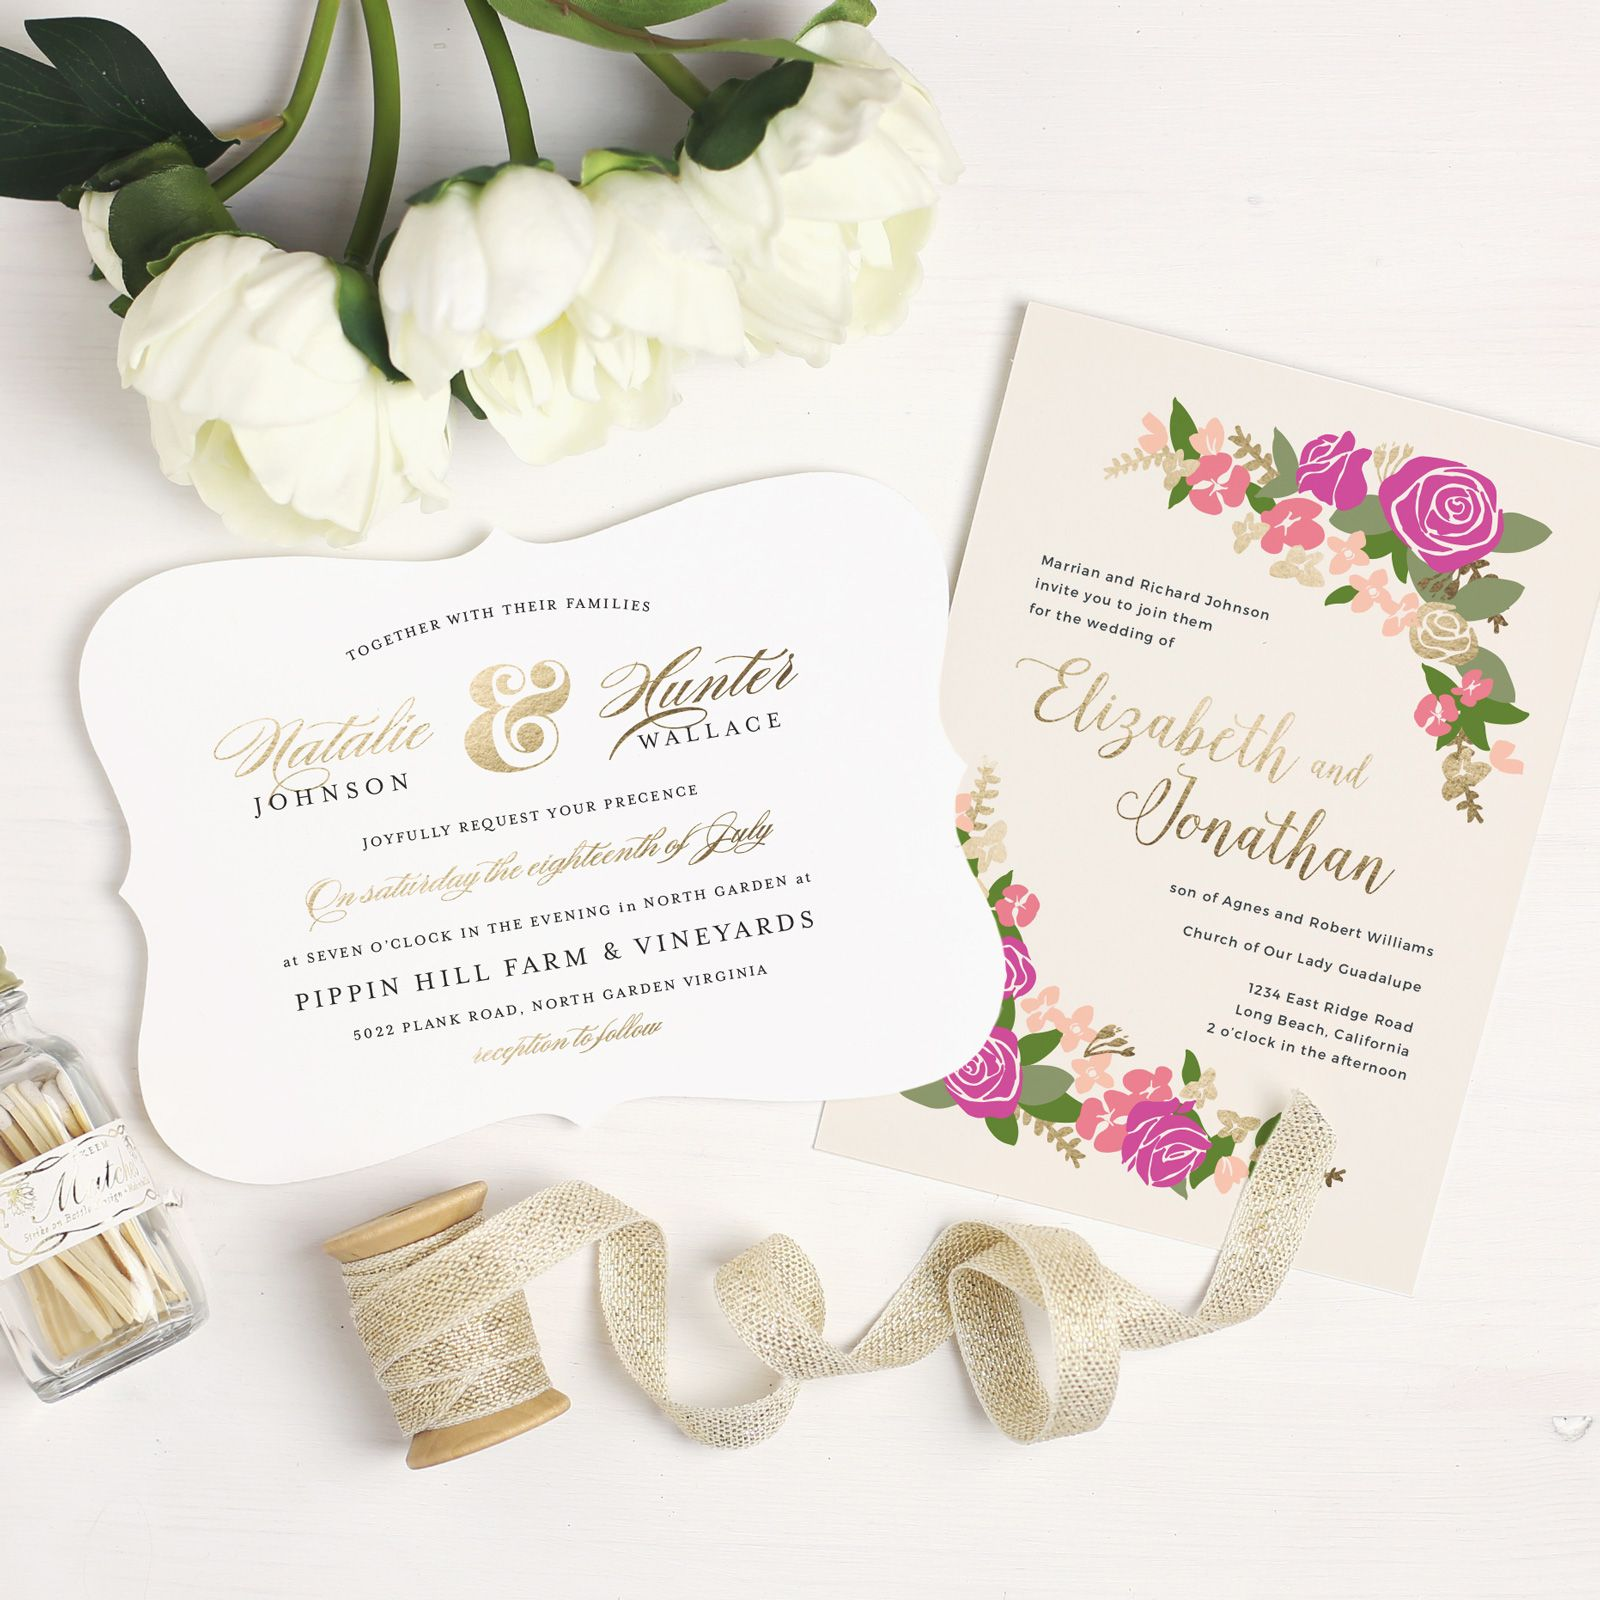 The Most Beautiful Wedding Invites From Basic Invite